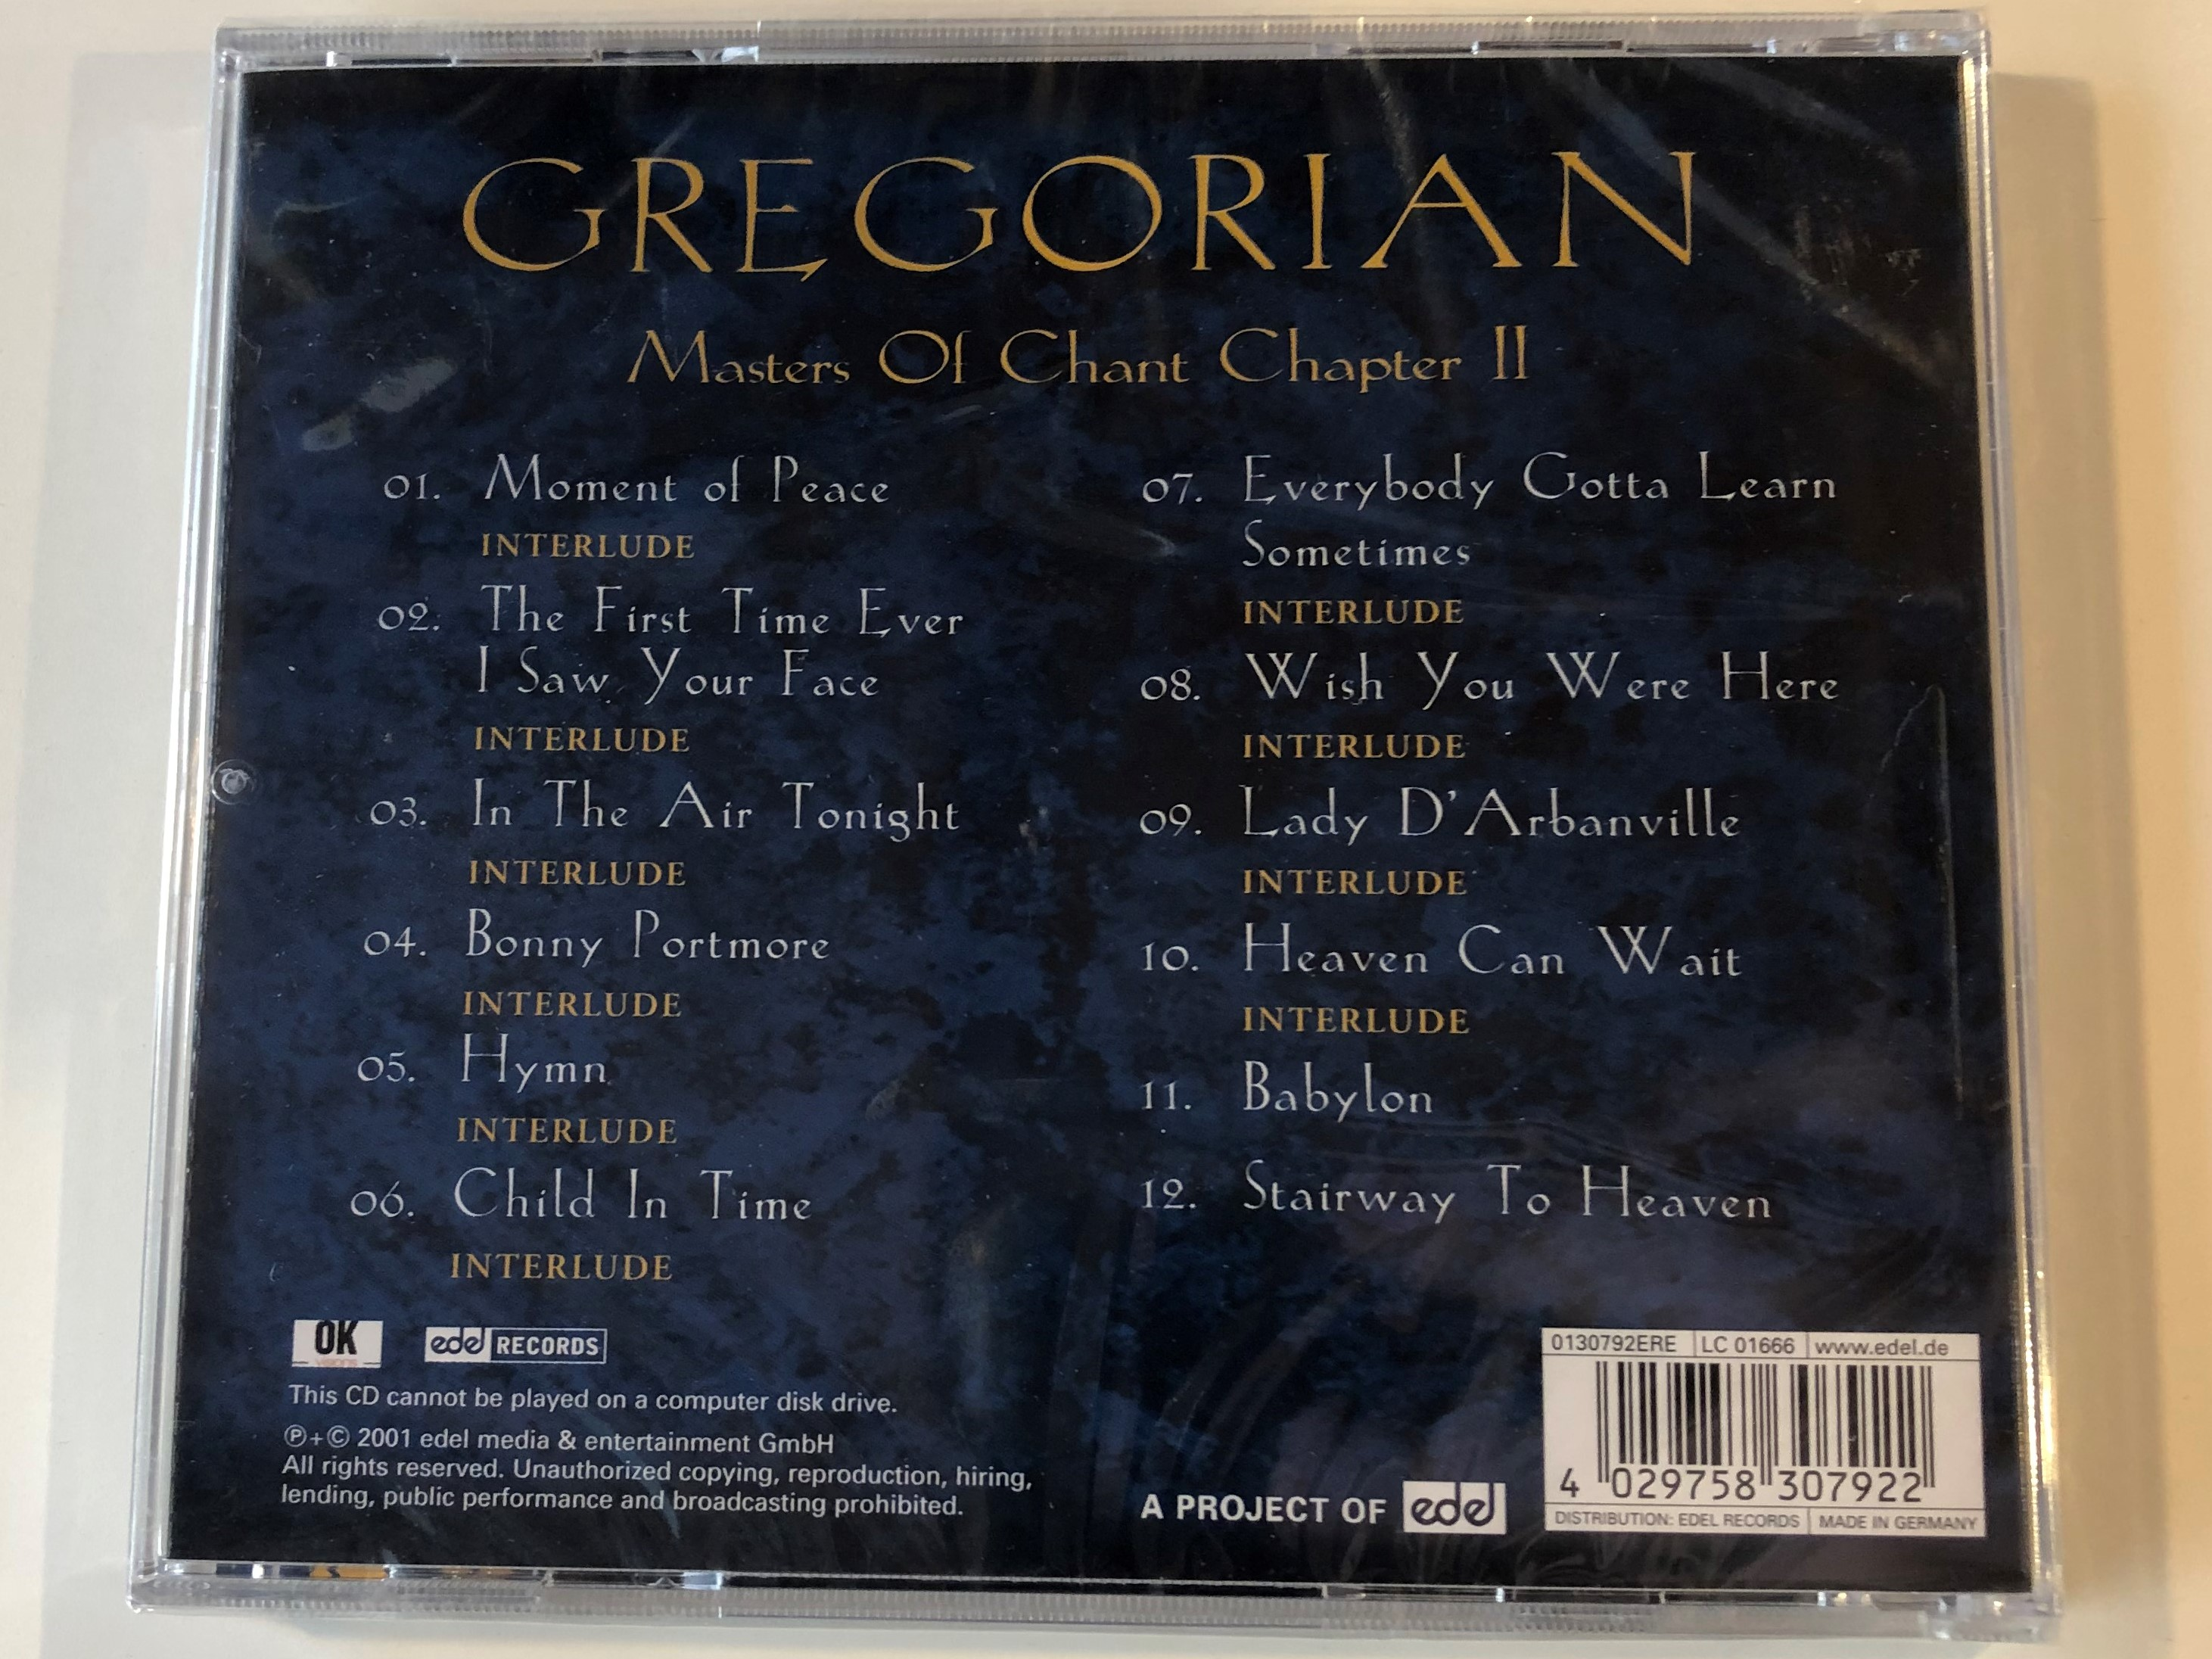 gregorian-masters-of-chant-chapter-ii-edel-records-audio-cd-2001-0130792ere-2-.jpg